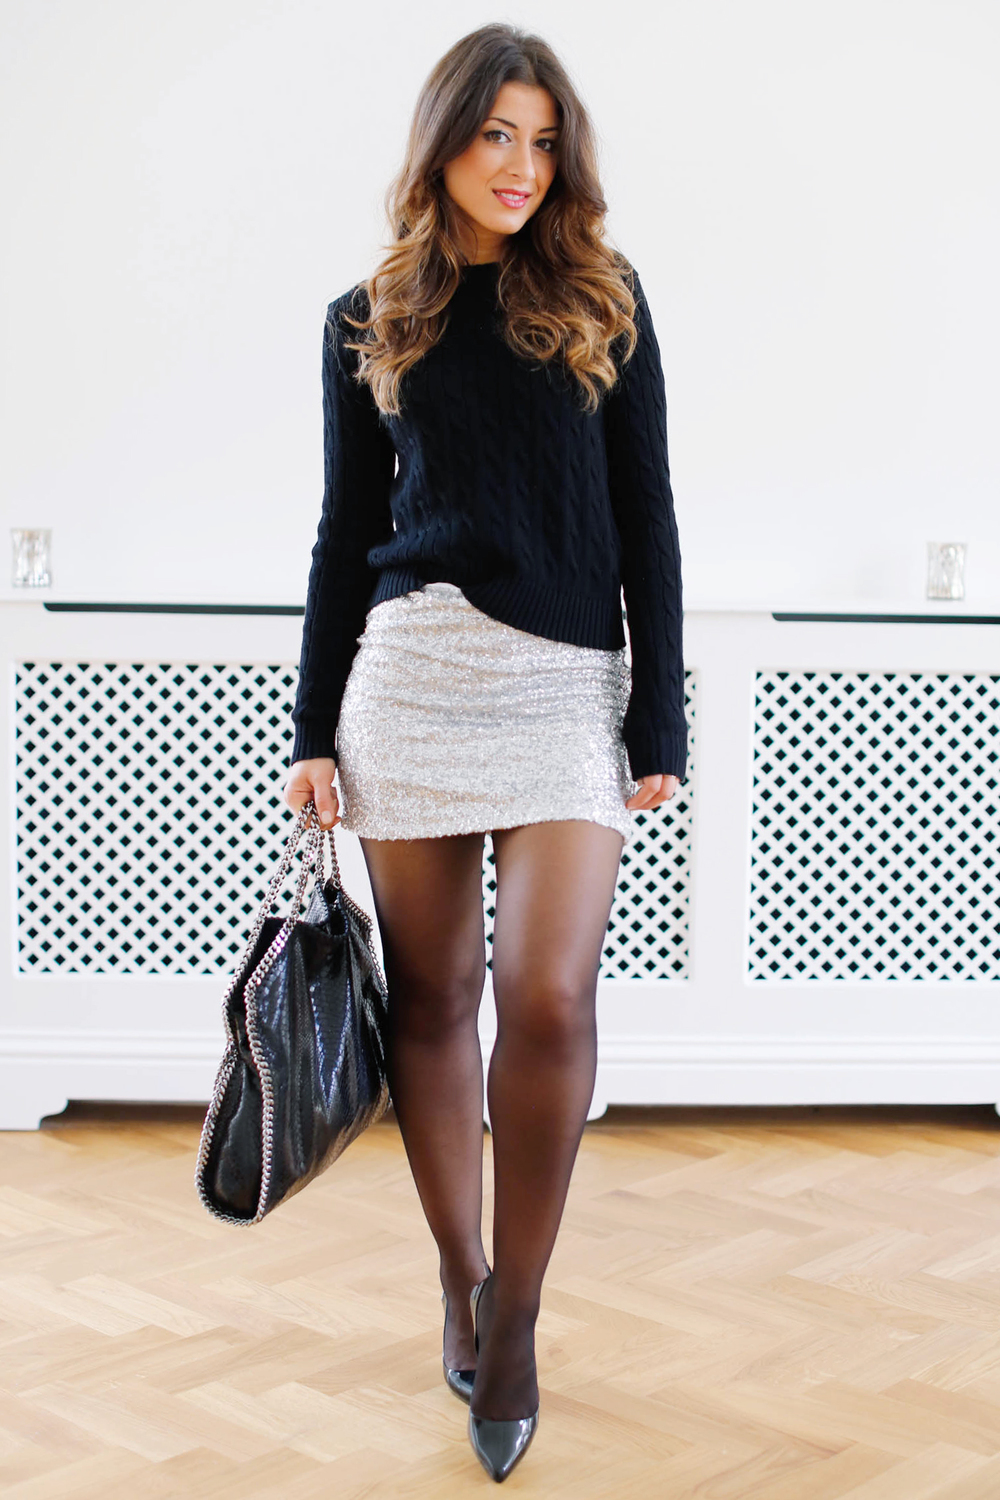 Good question Dresses and pantyhose pics